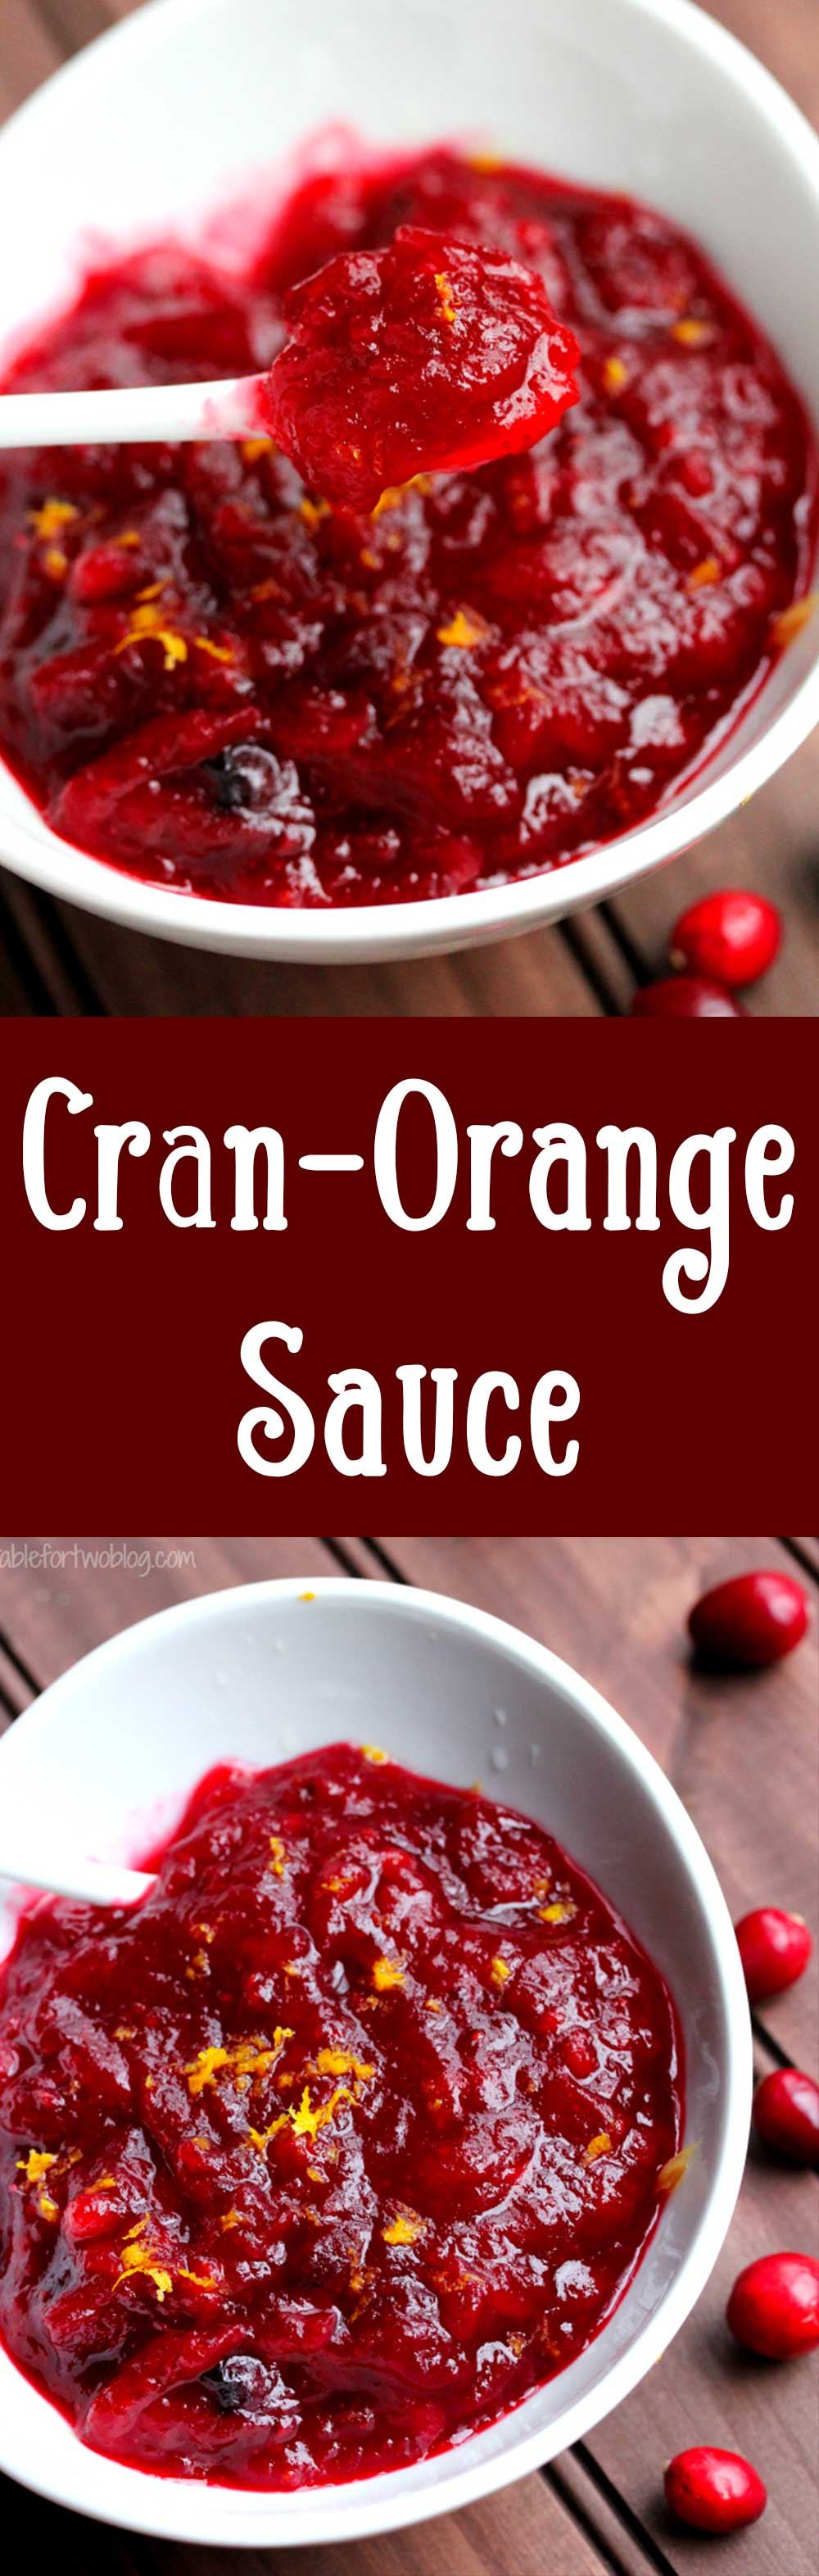 Why anyone would buy canned cranberry sauce is beyond me. You must try this cran-orange sauce as it's super easy to make and I love the contrasting flavors of cranberry and orange. It's a sweet and tart flavor that go very well together!